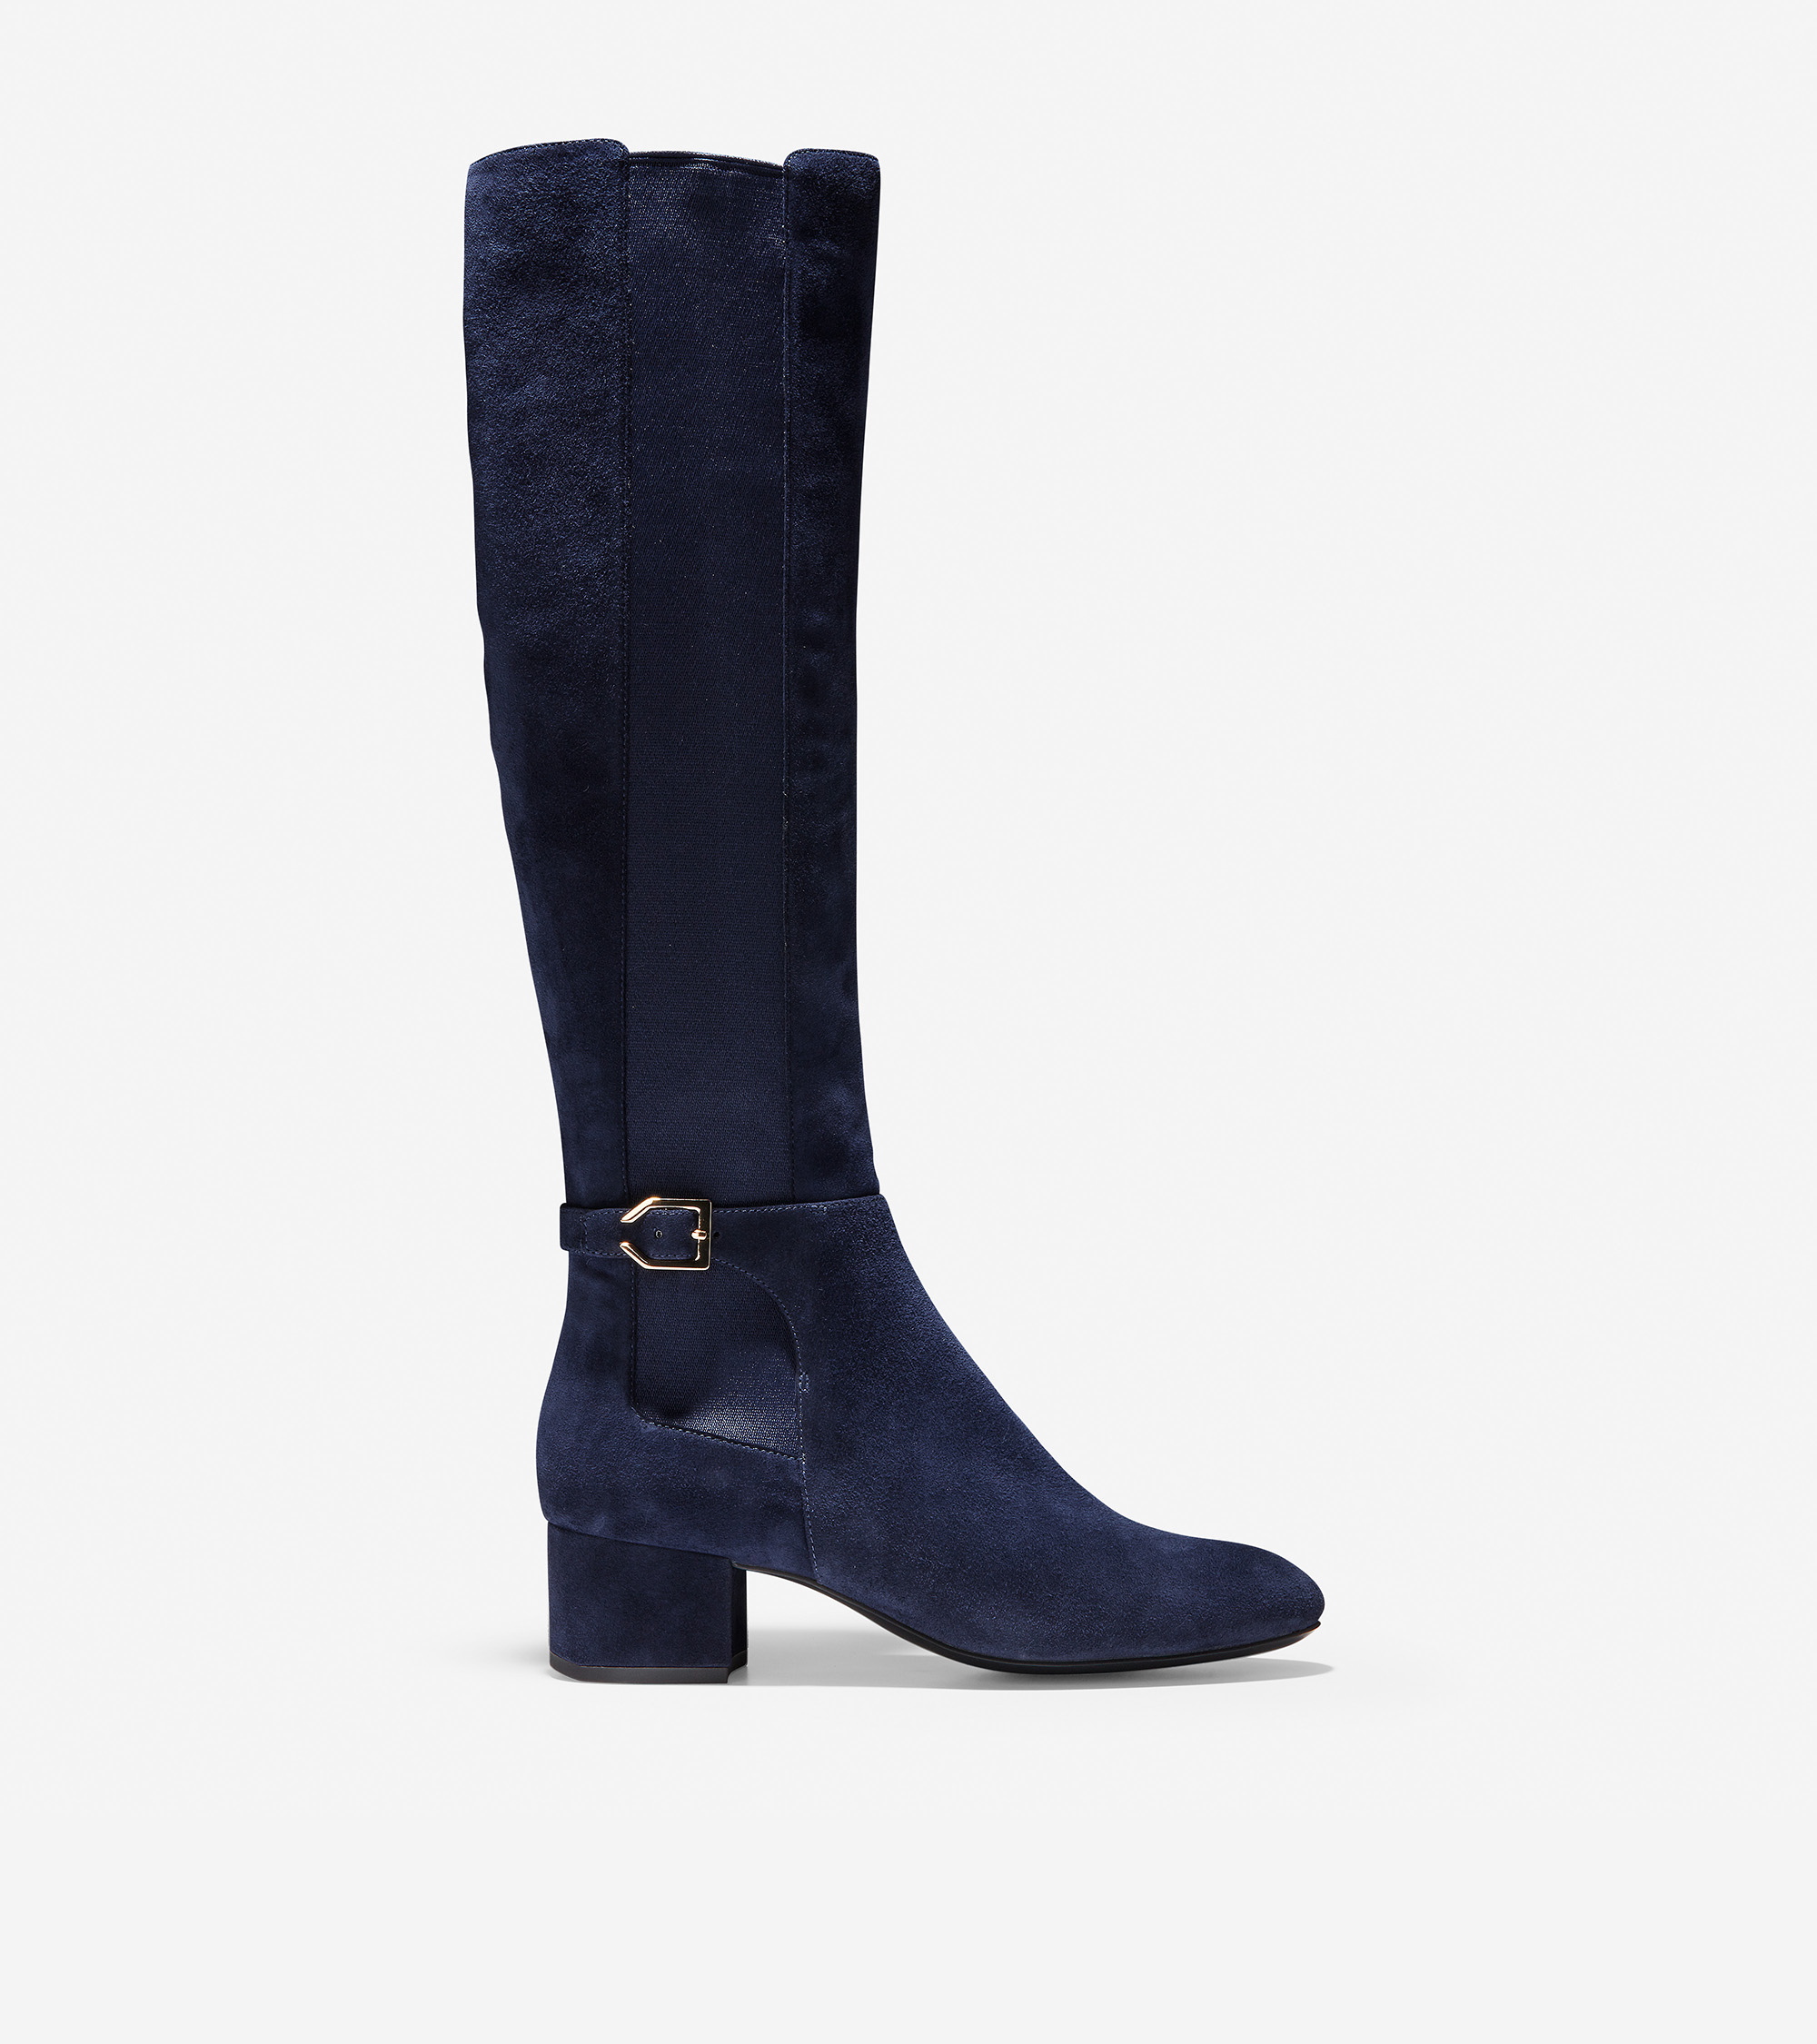 e54dbbbb3 Women's Avani Stretch Boot (45mm) in Marine Blue Suede | Cole Haan US